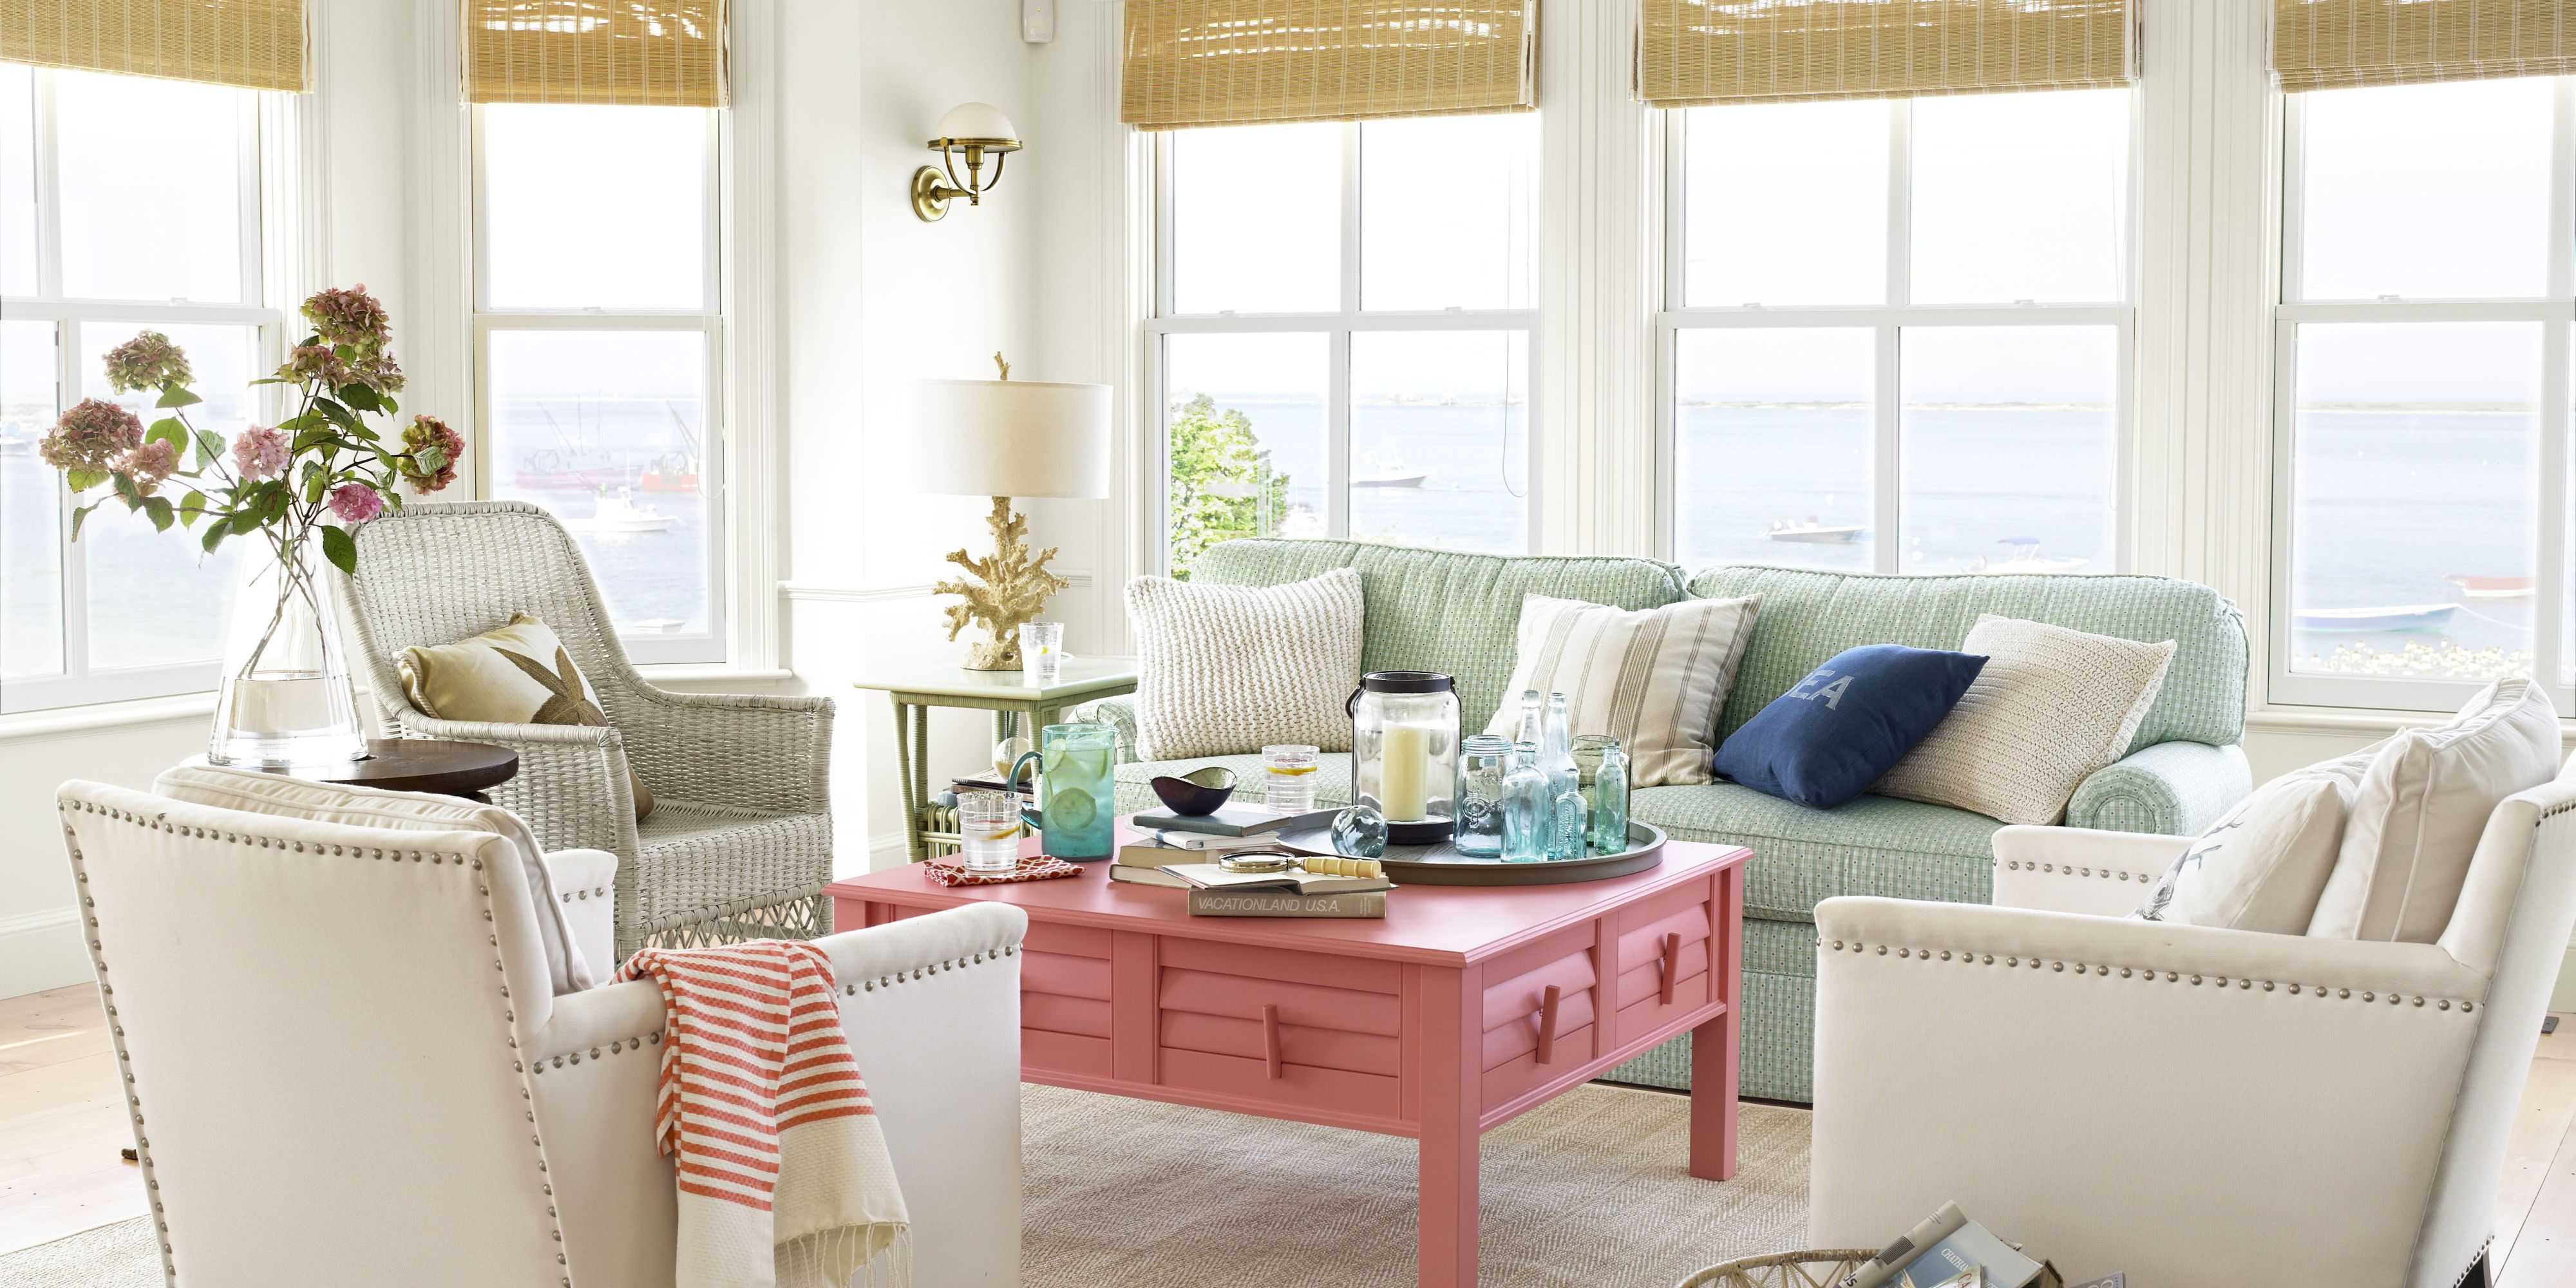 40 Beach House Decorating Home Decor Ideasrhcountryliving: Beach Home Decor Accents At Home Improvement Advice